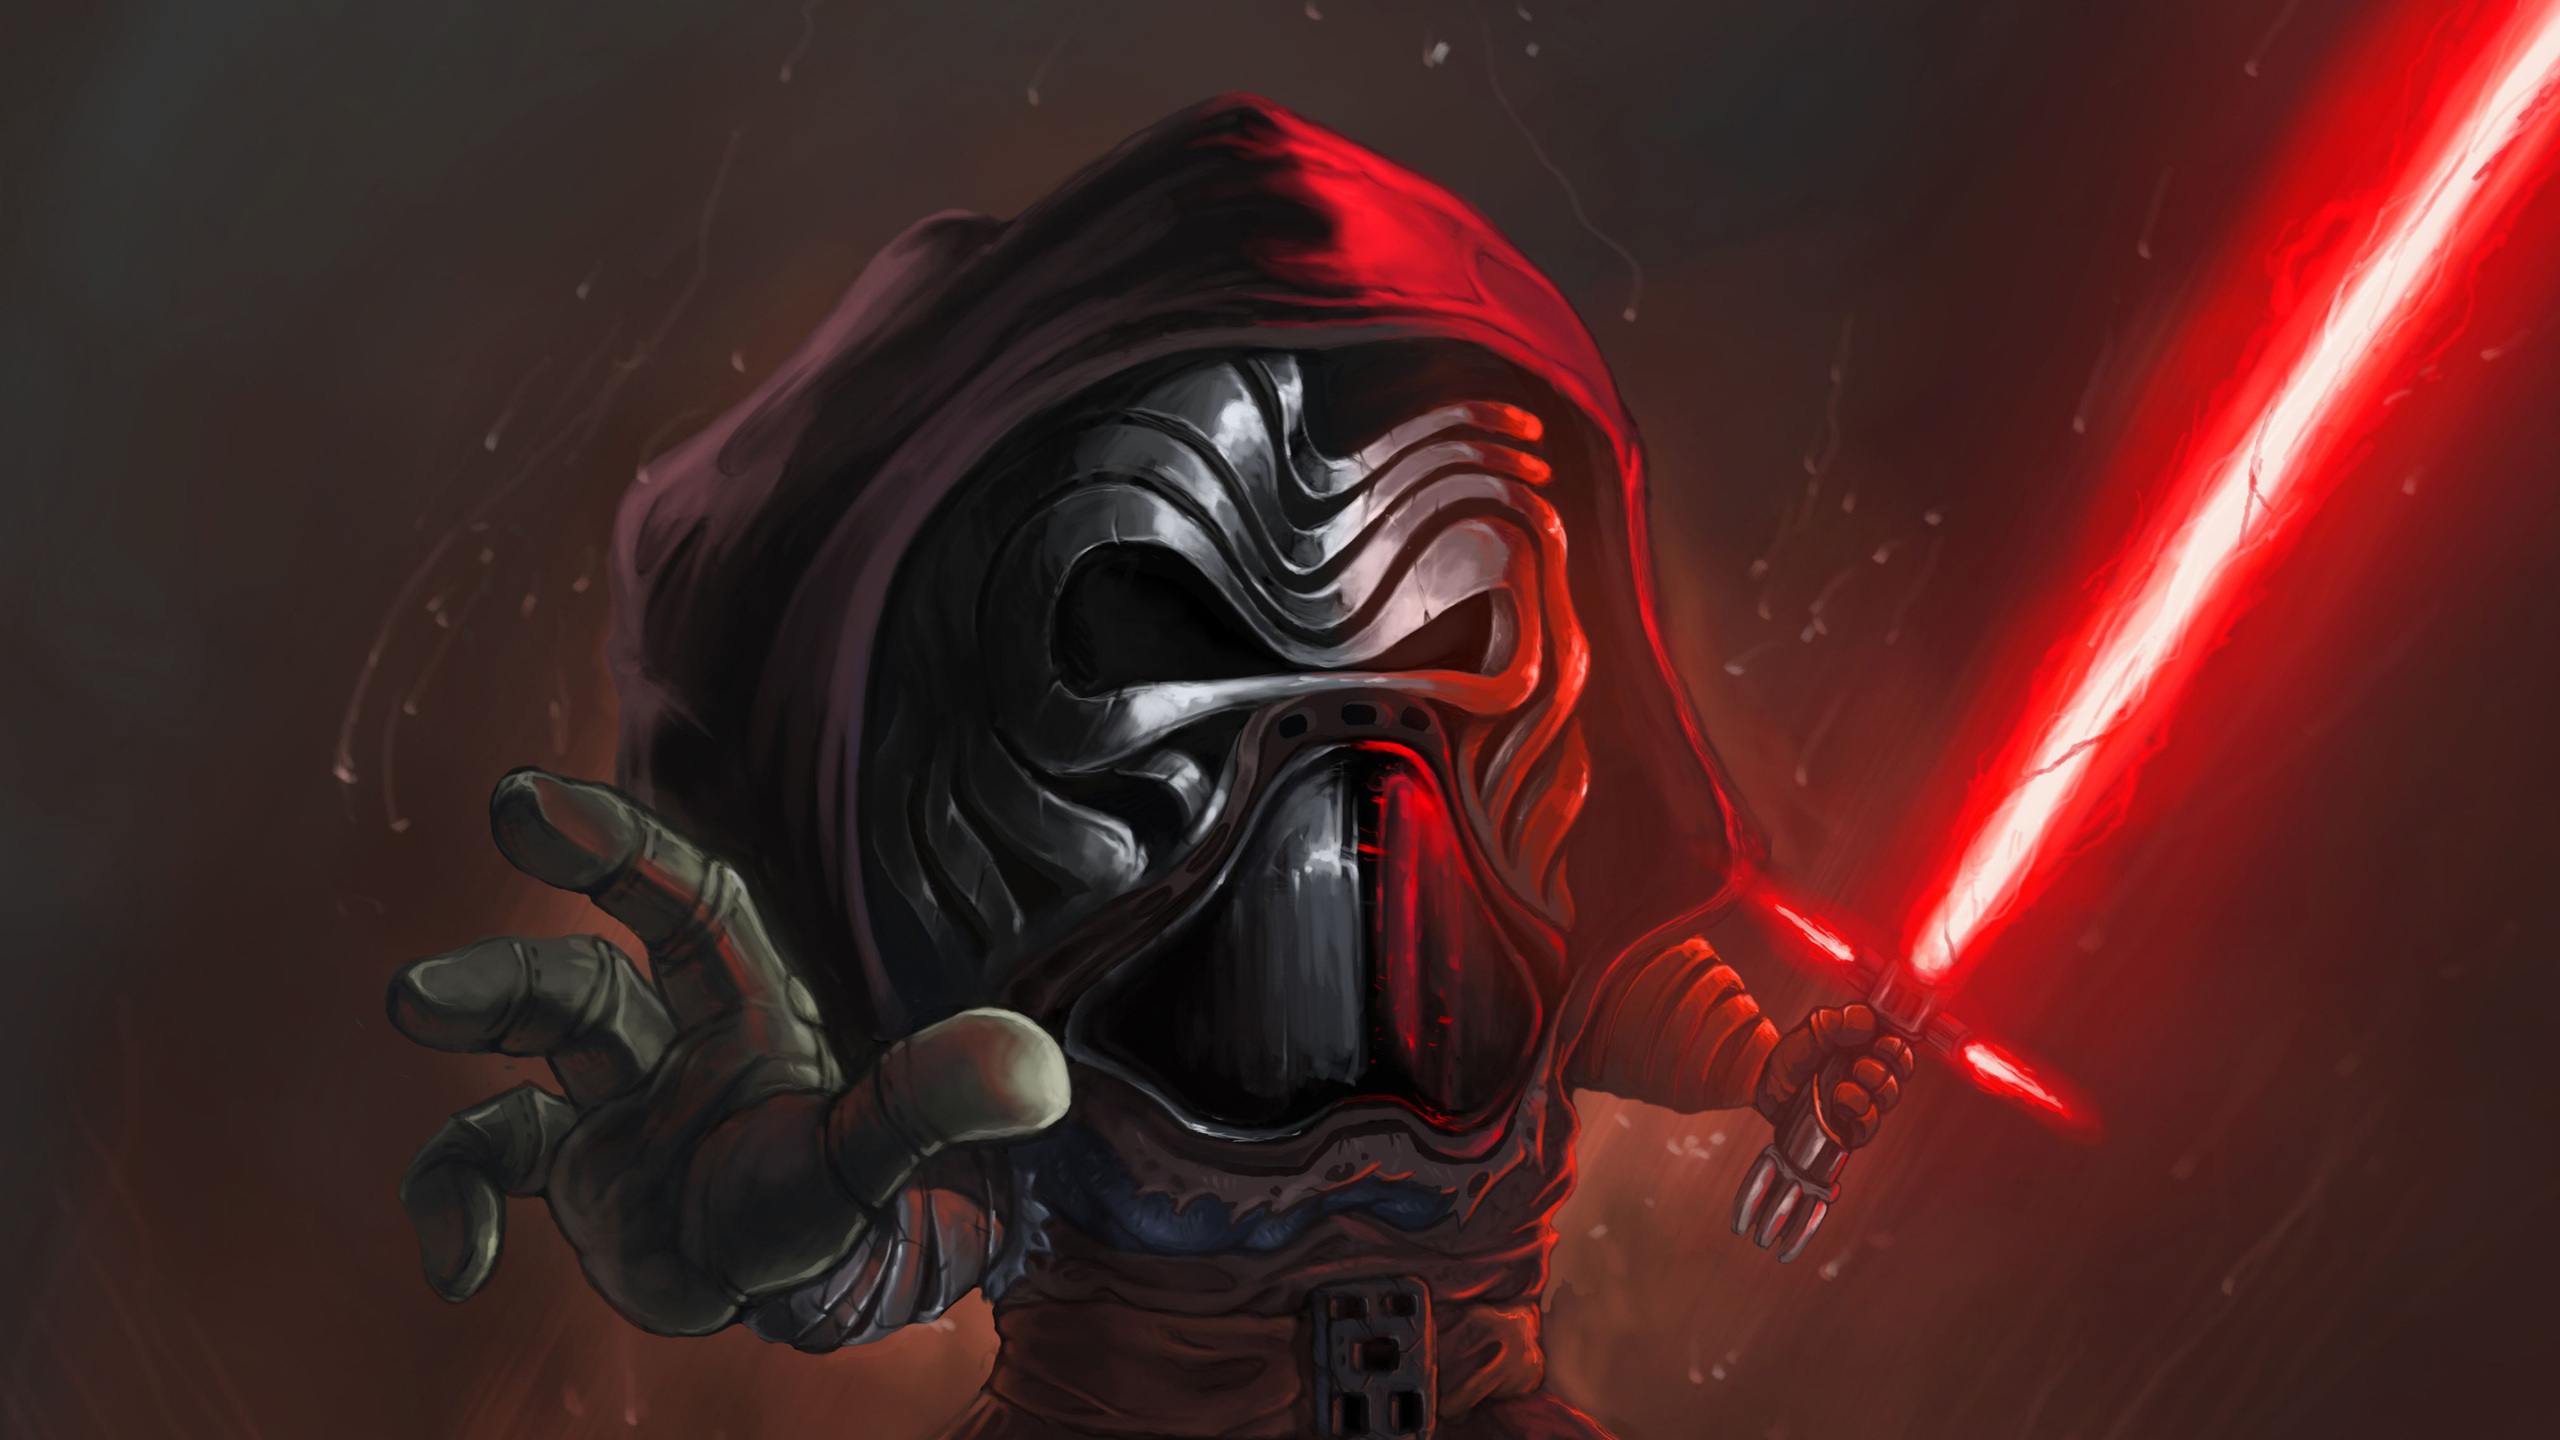 2560x1440 Kylo Ren Cartoon Art 1440P Resolution HD 4k ...